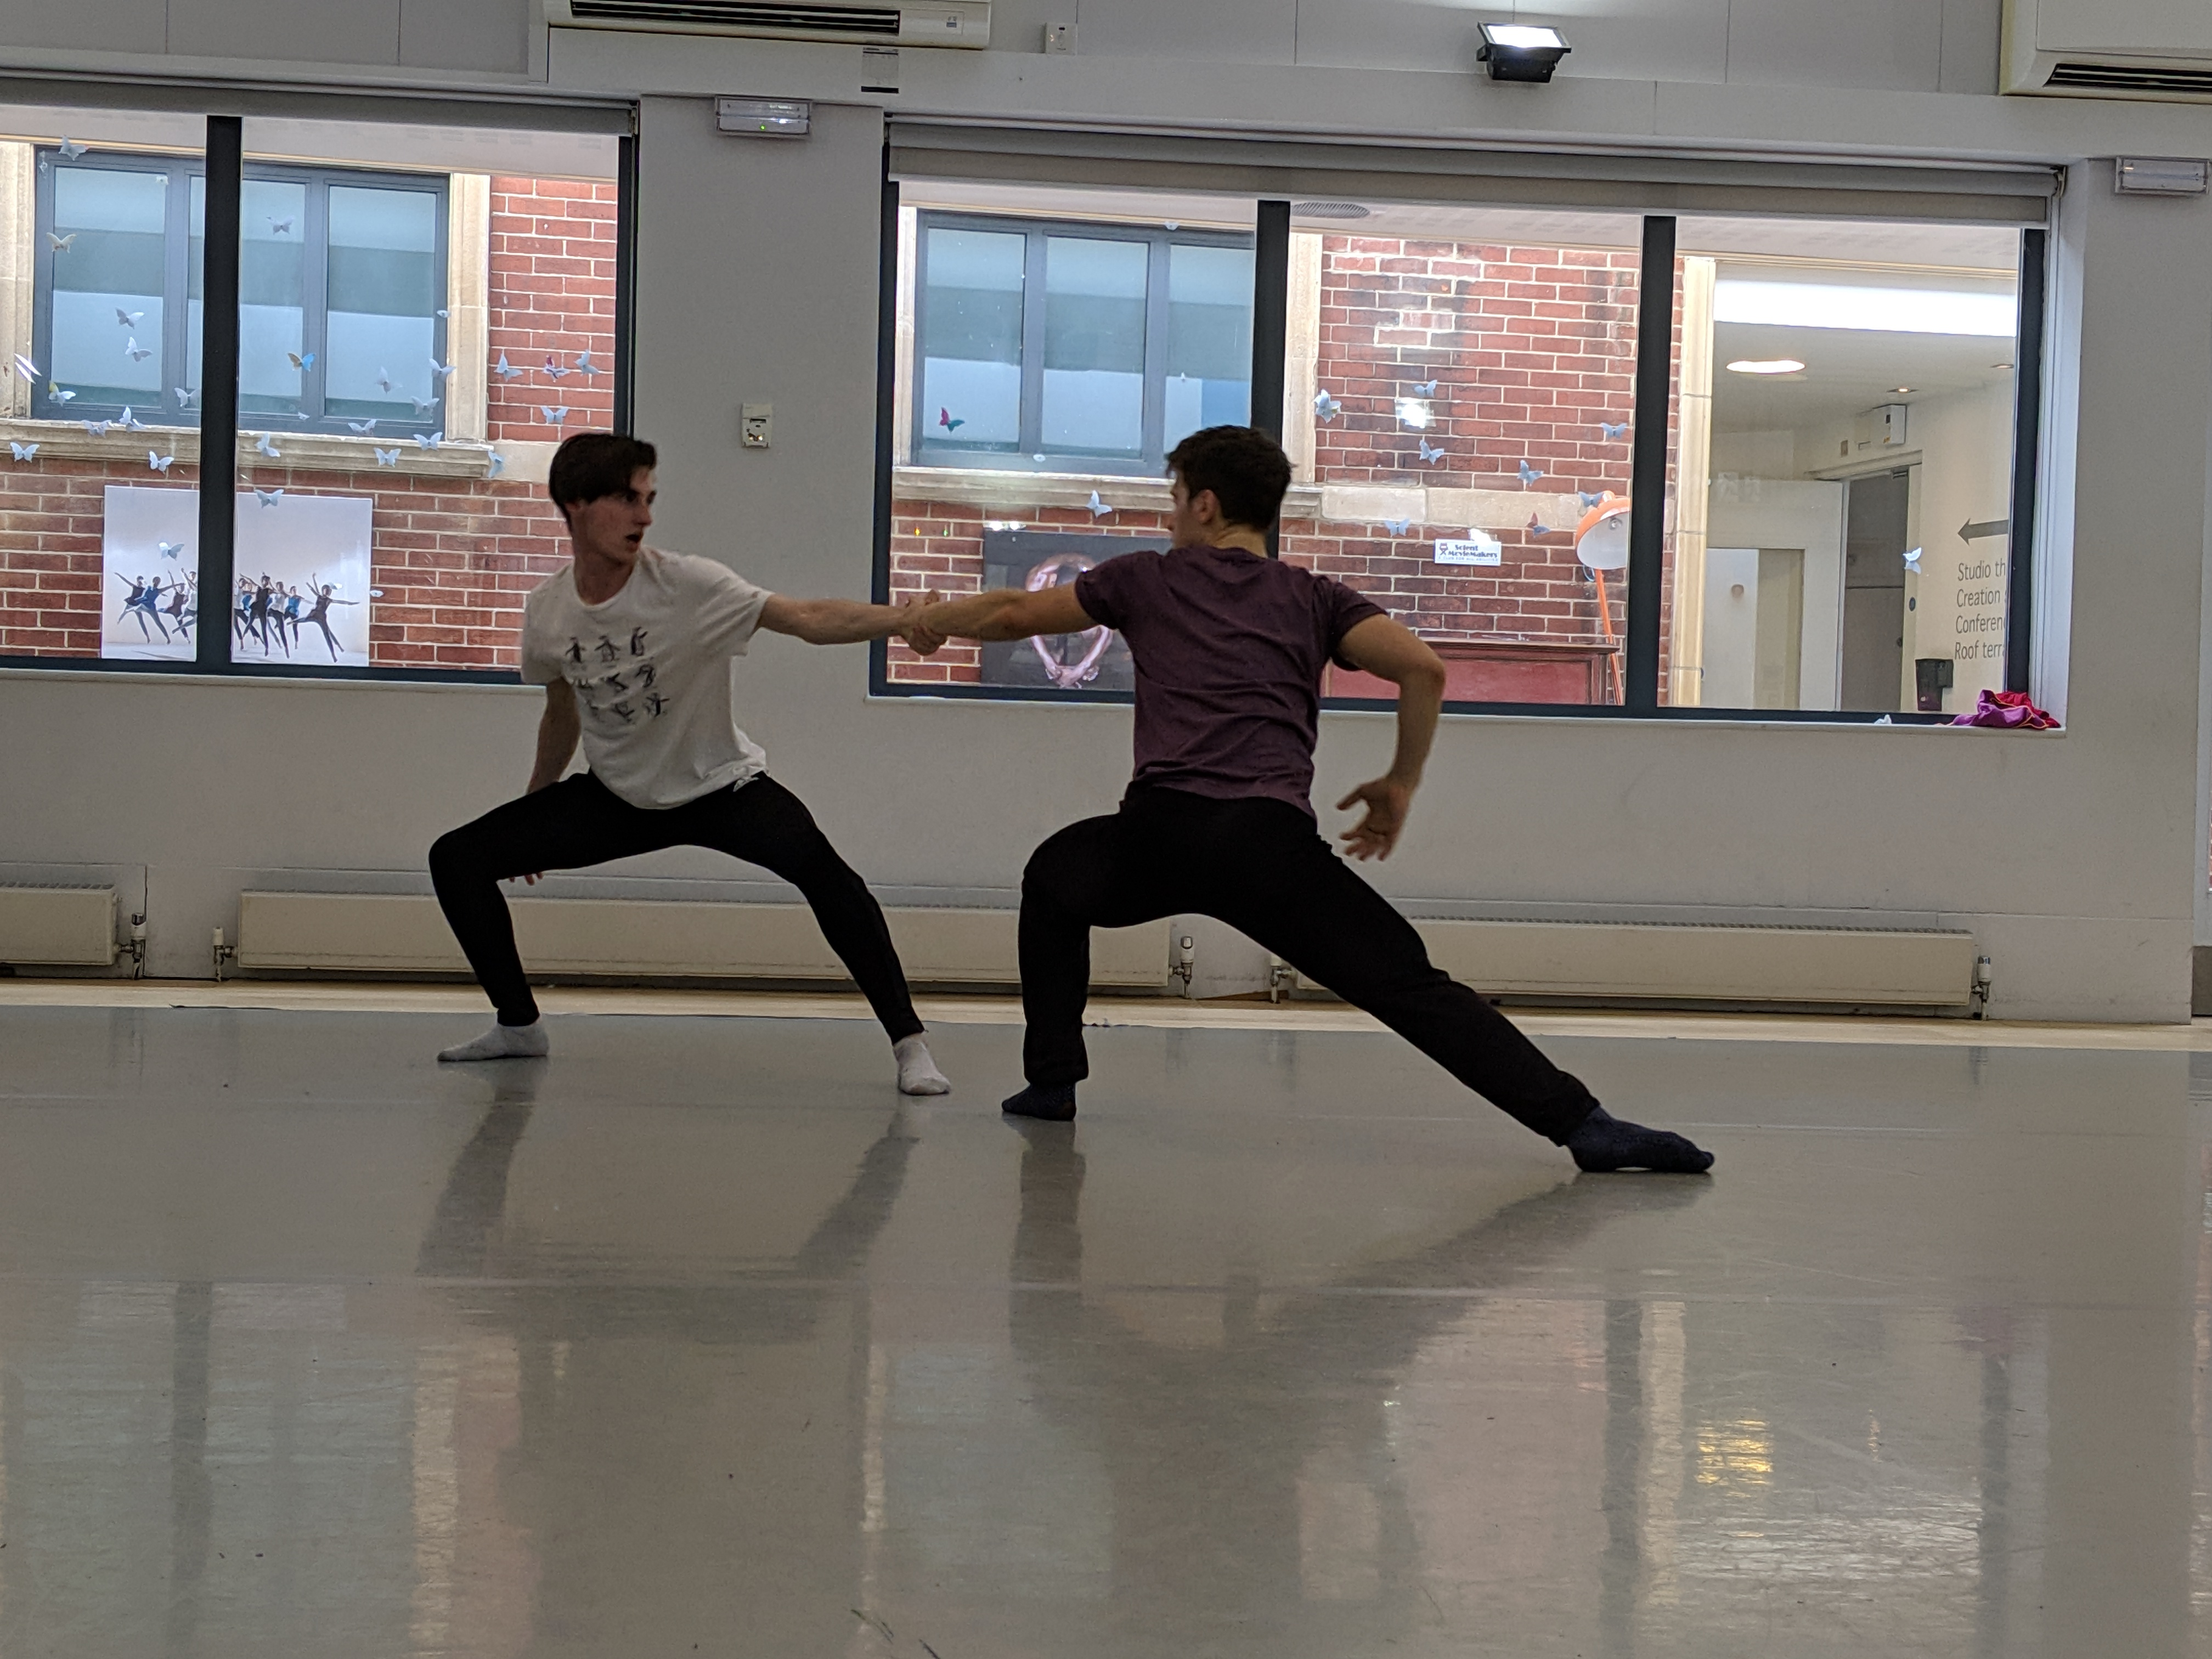 Two male dancers during a class in the dance studio with window to the atrium in background